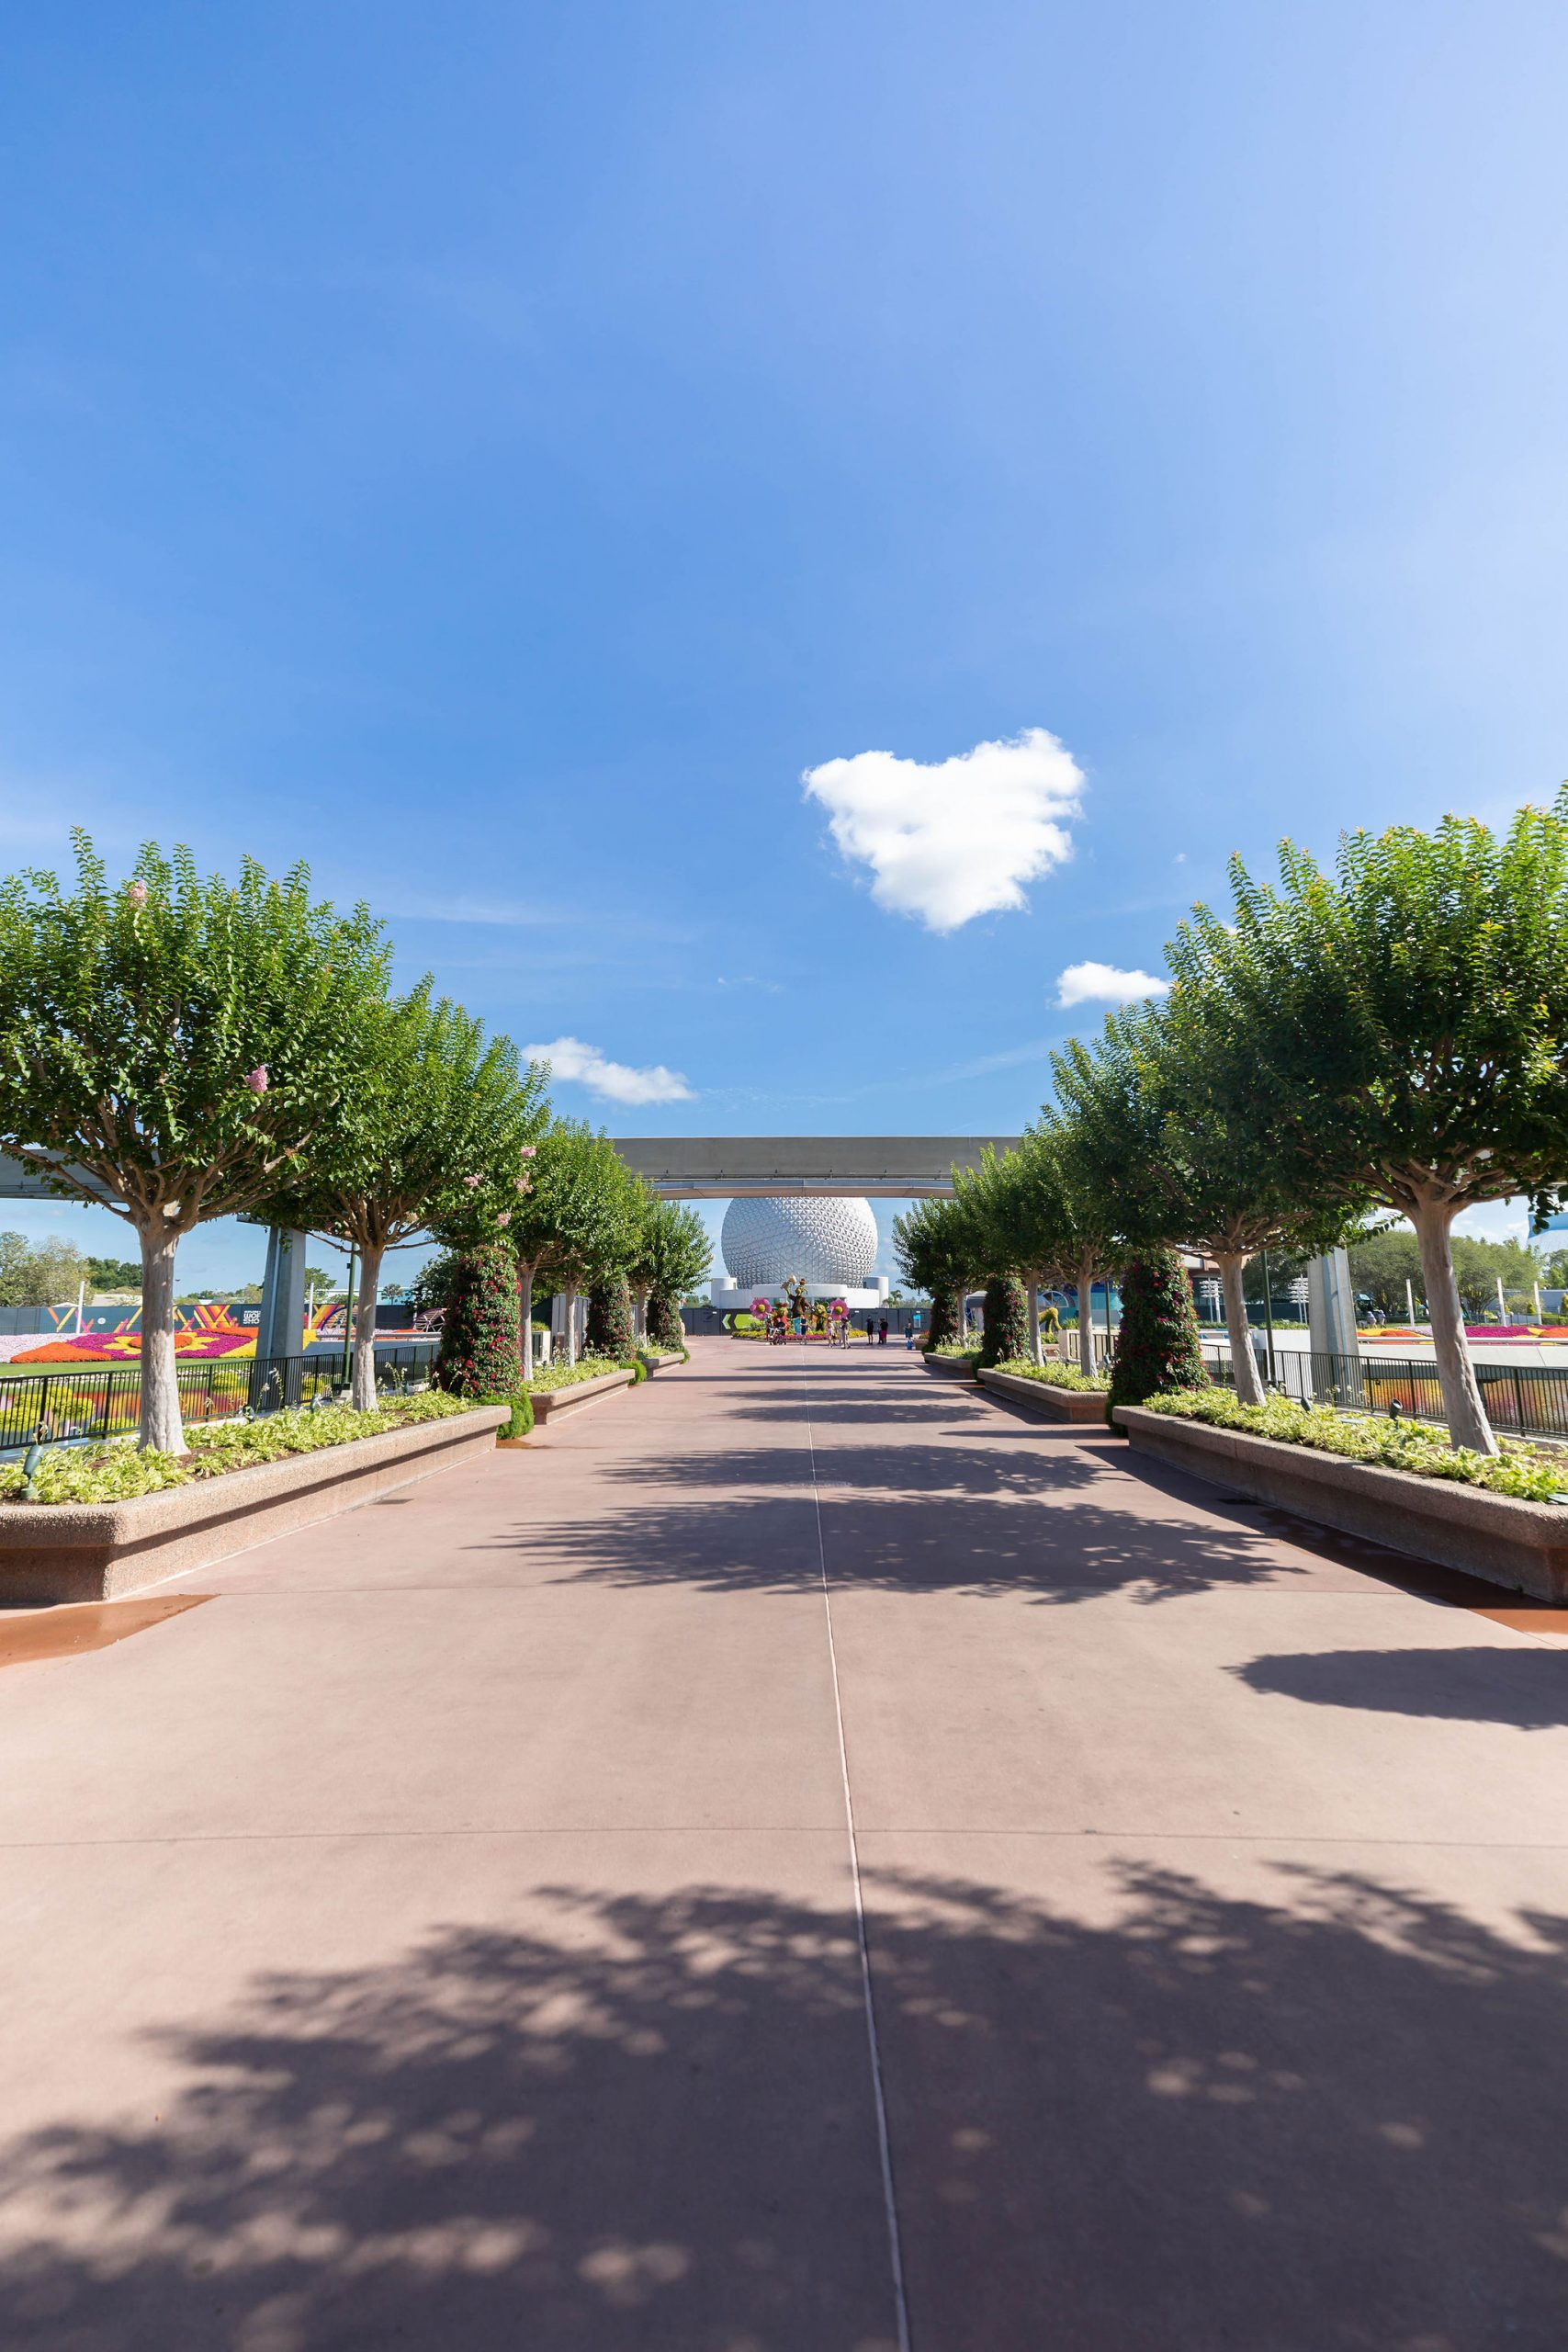 Epcot Without Crowds Photographed by Luxury Travel Writer Annie Fairfax